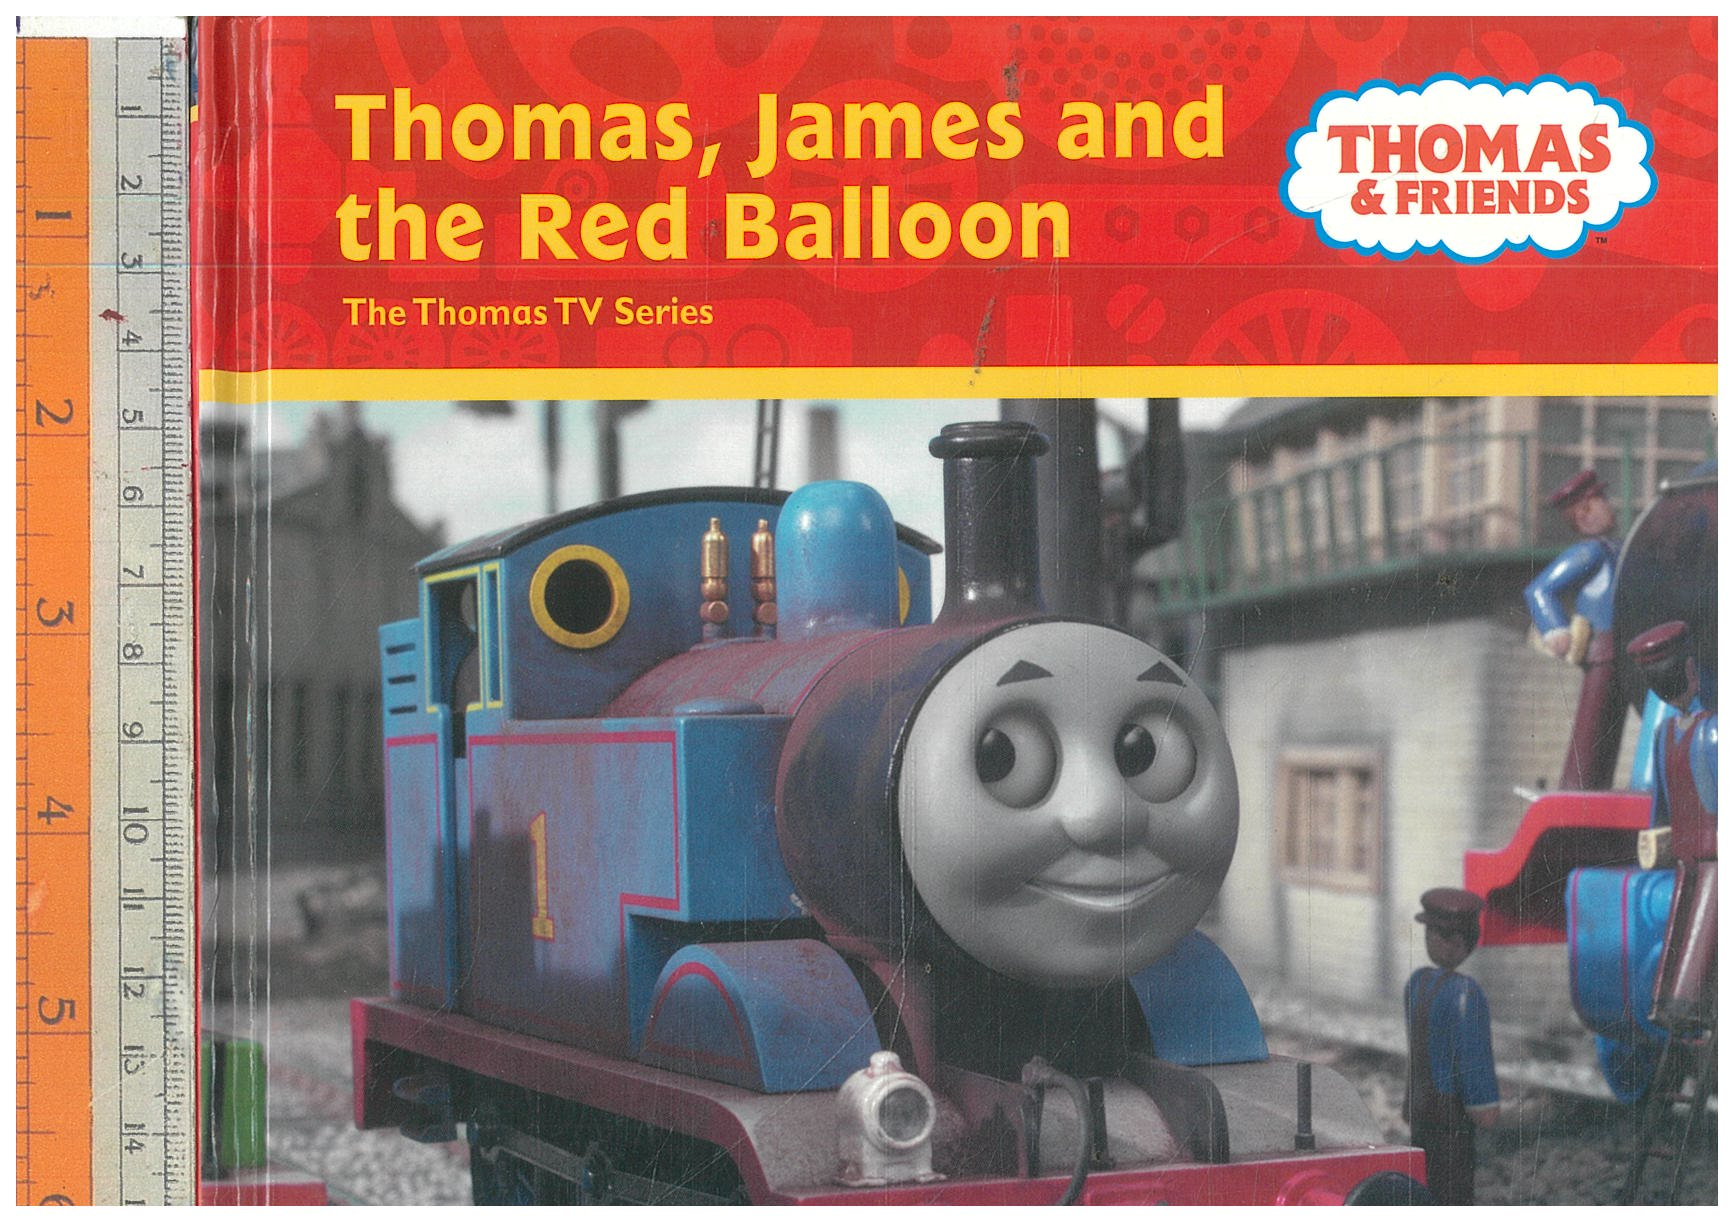 Thomas,James and Red Balloon